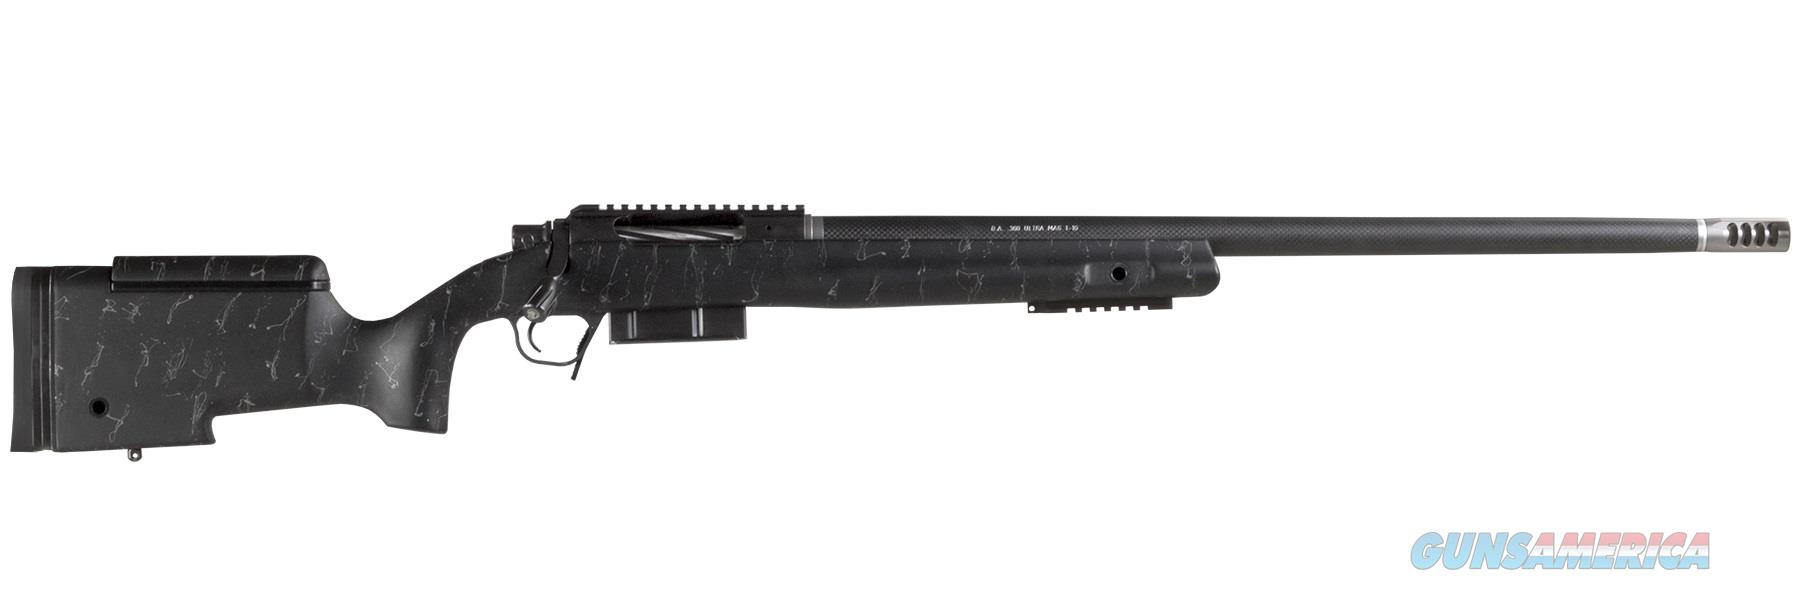 "Ba Tac 308Win Blk/Gry 24"" Tb CA10270-484481  Guns > Rifles > C Misc Rifles"